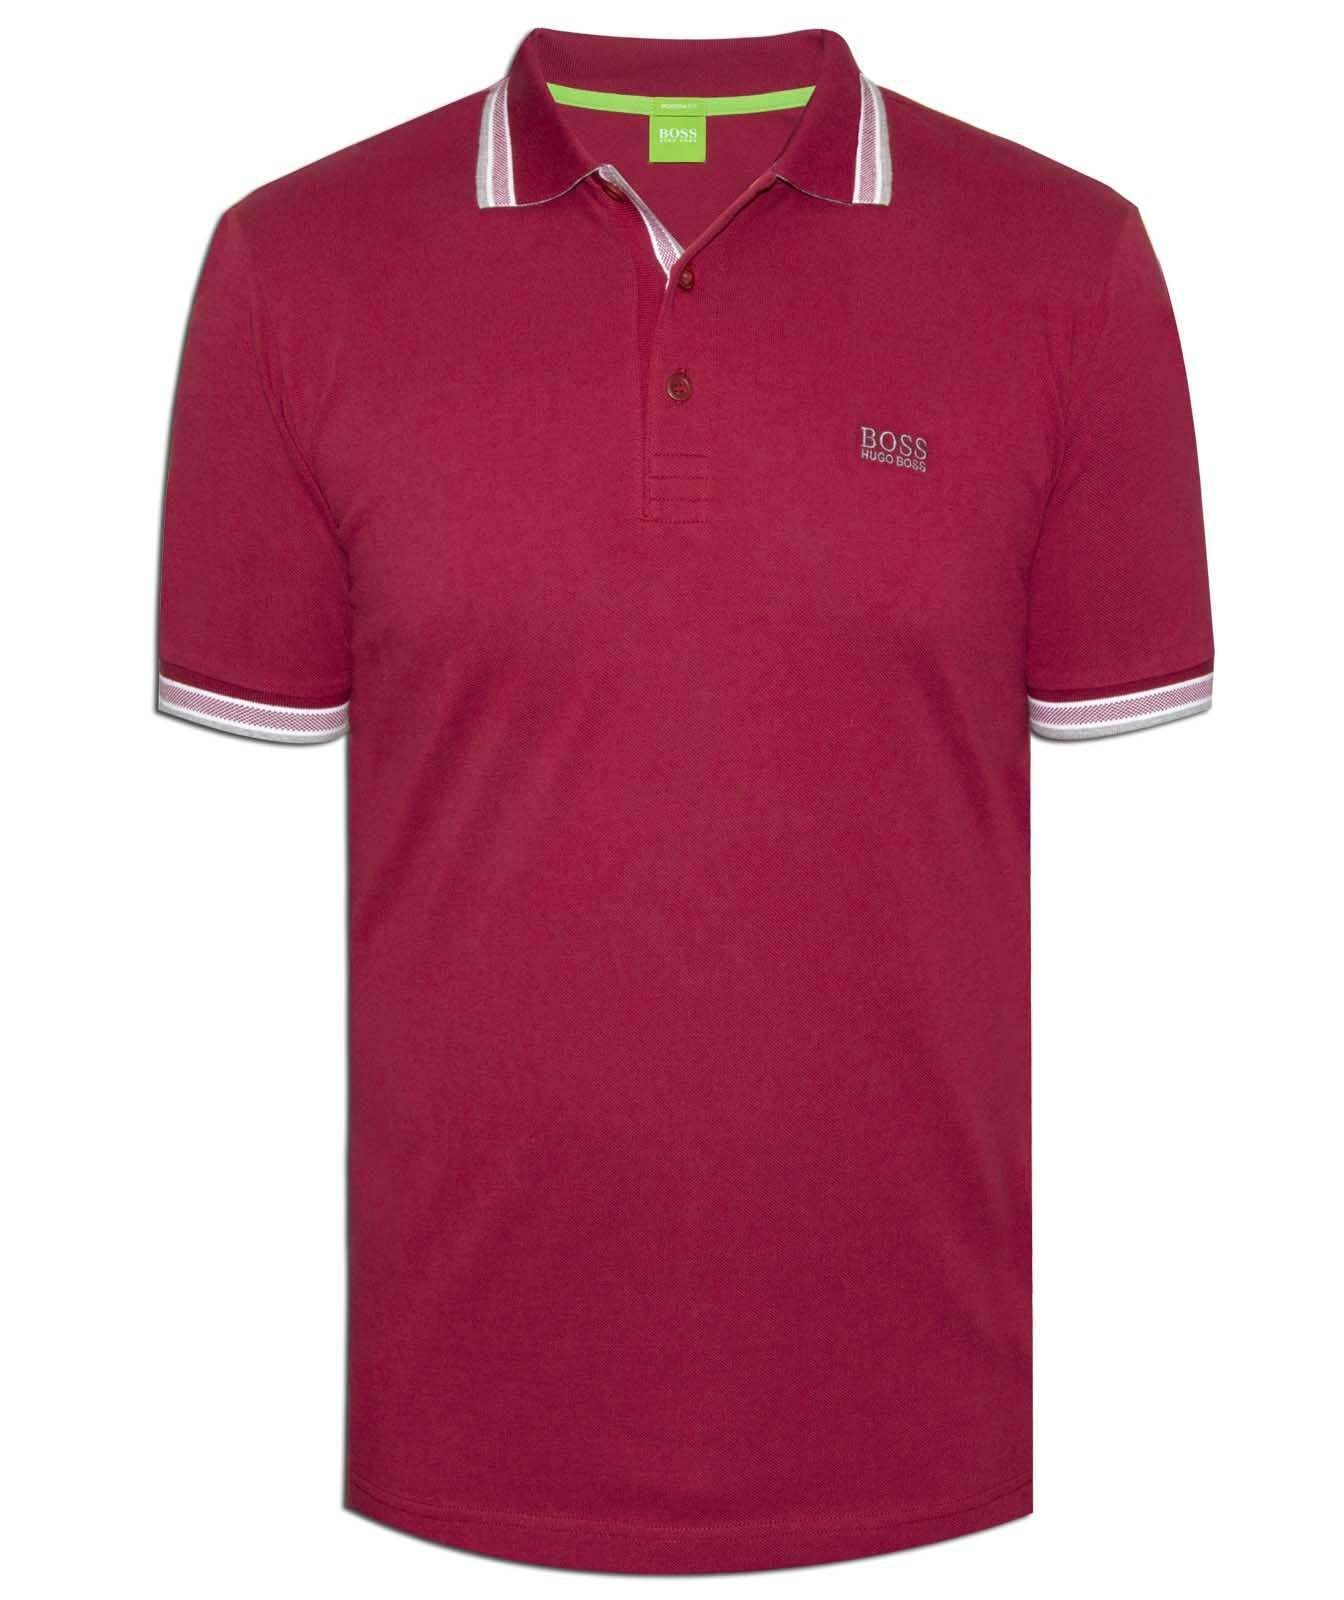 New Hugo BOSS AG Green Polo shirt in Maroon cotton piqué Paddy 50198254 Germany